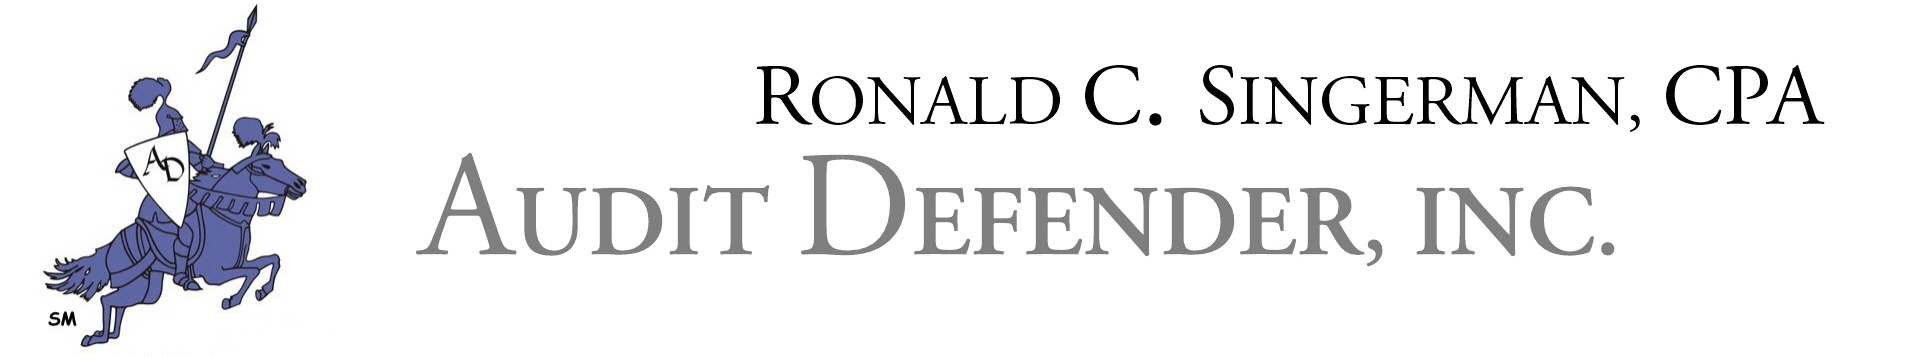 Audit Defender, Inc. Ronald C. Singerman, CPA